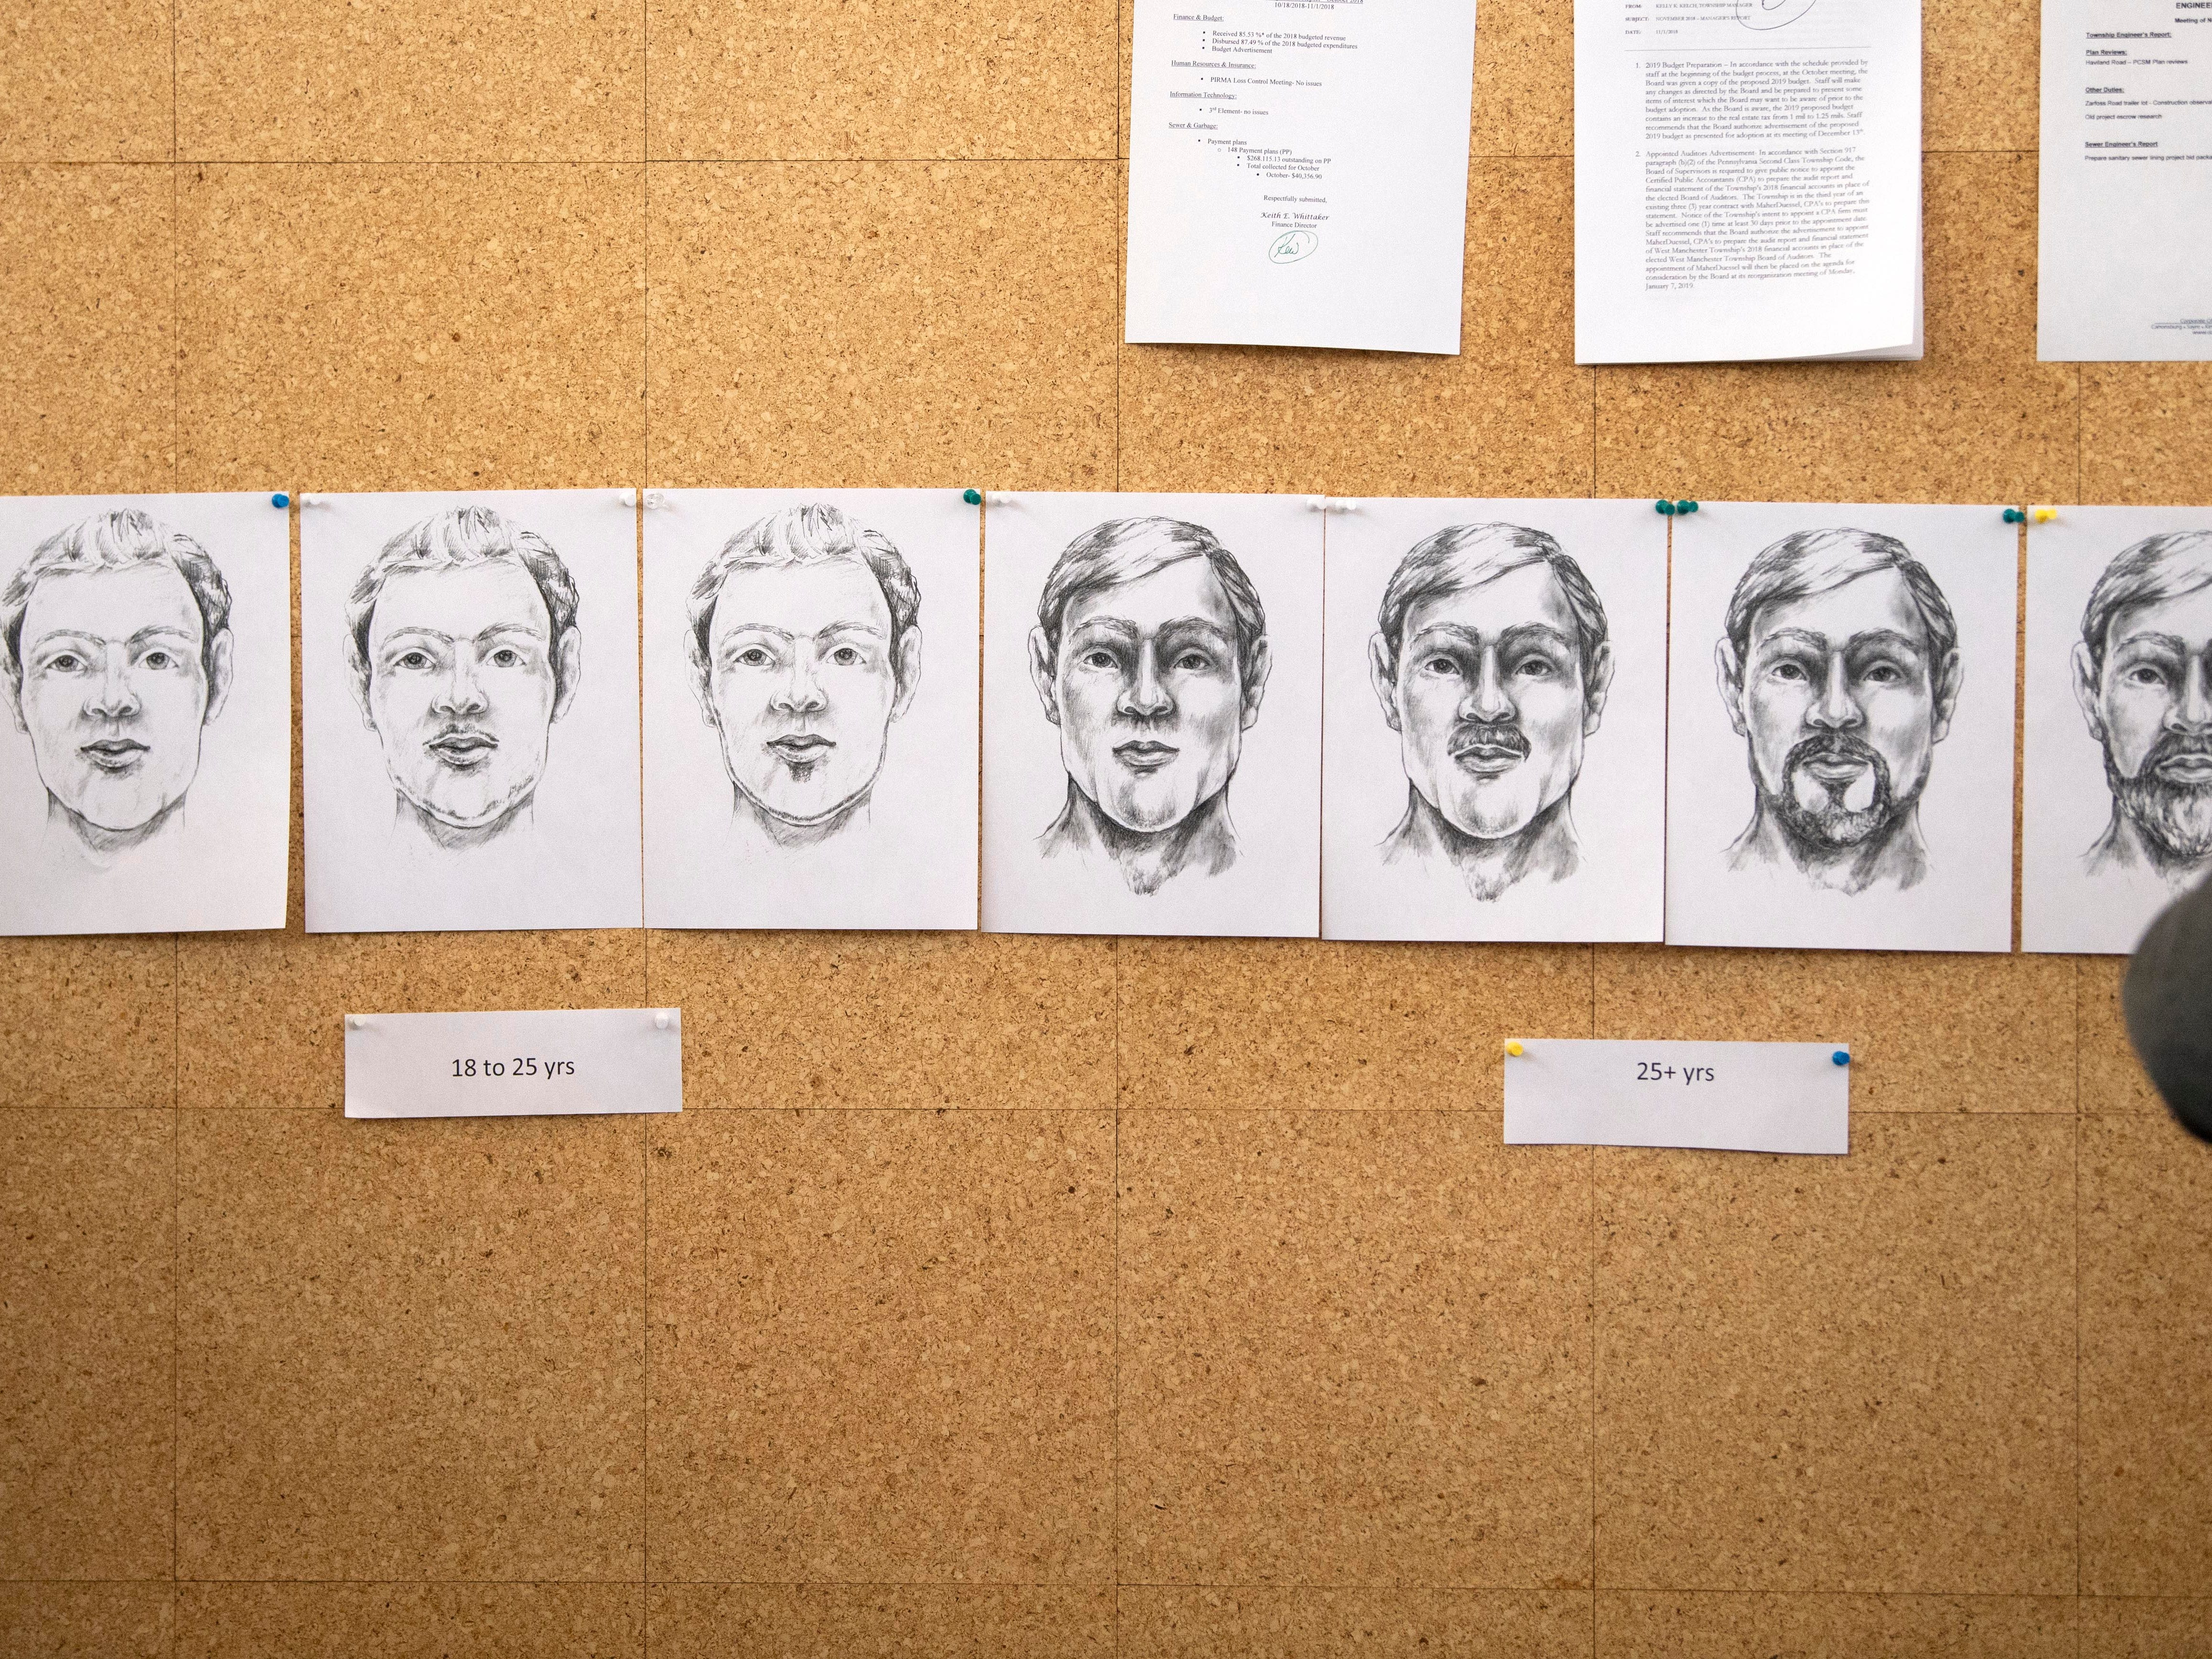 Sketches, depicting what the victim of a 2013 cold case might look like, hang on a wall during a press conference at West Manchester Township building, Thursday, Dec. 6, 2018.